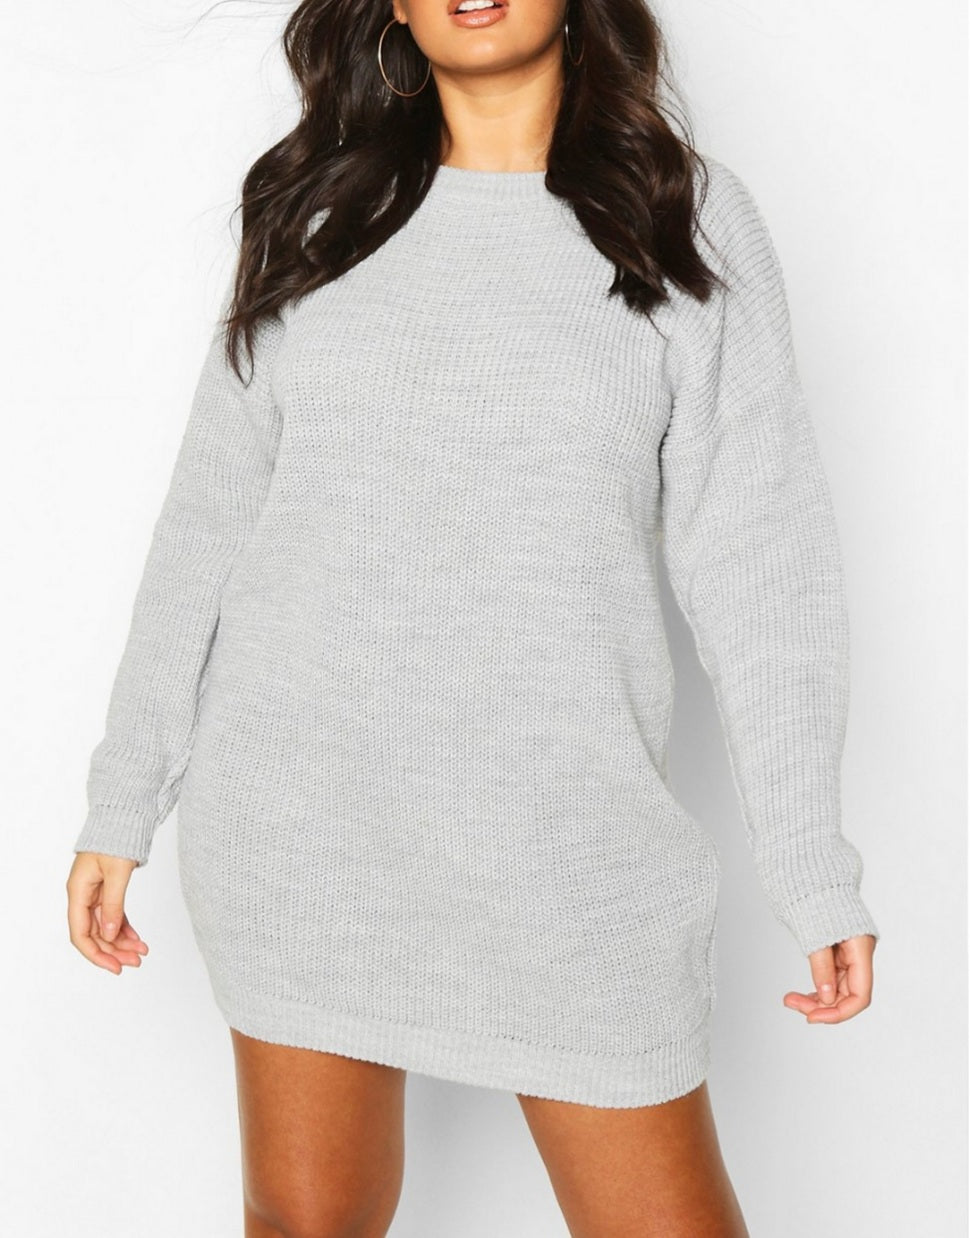 With The Crew Plus Size Sweater Dress